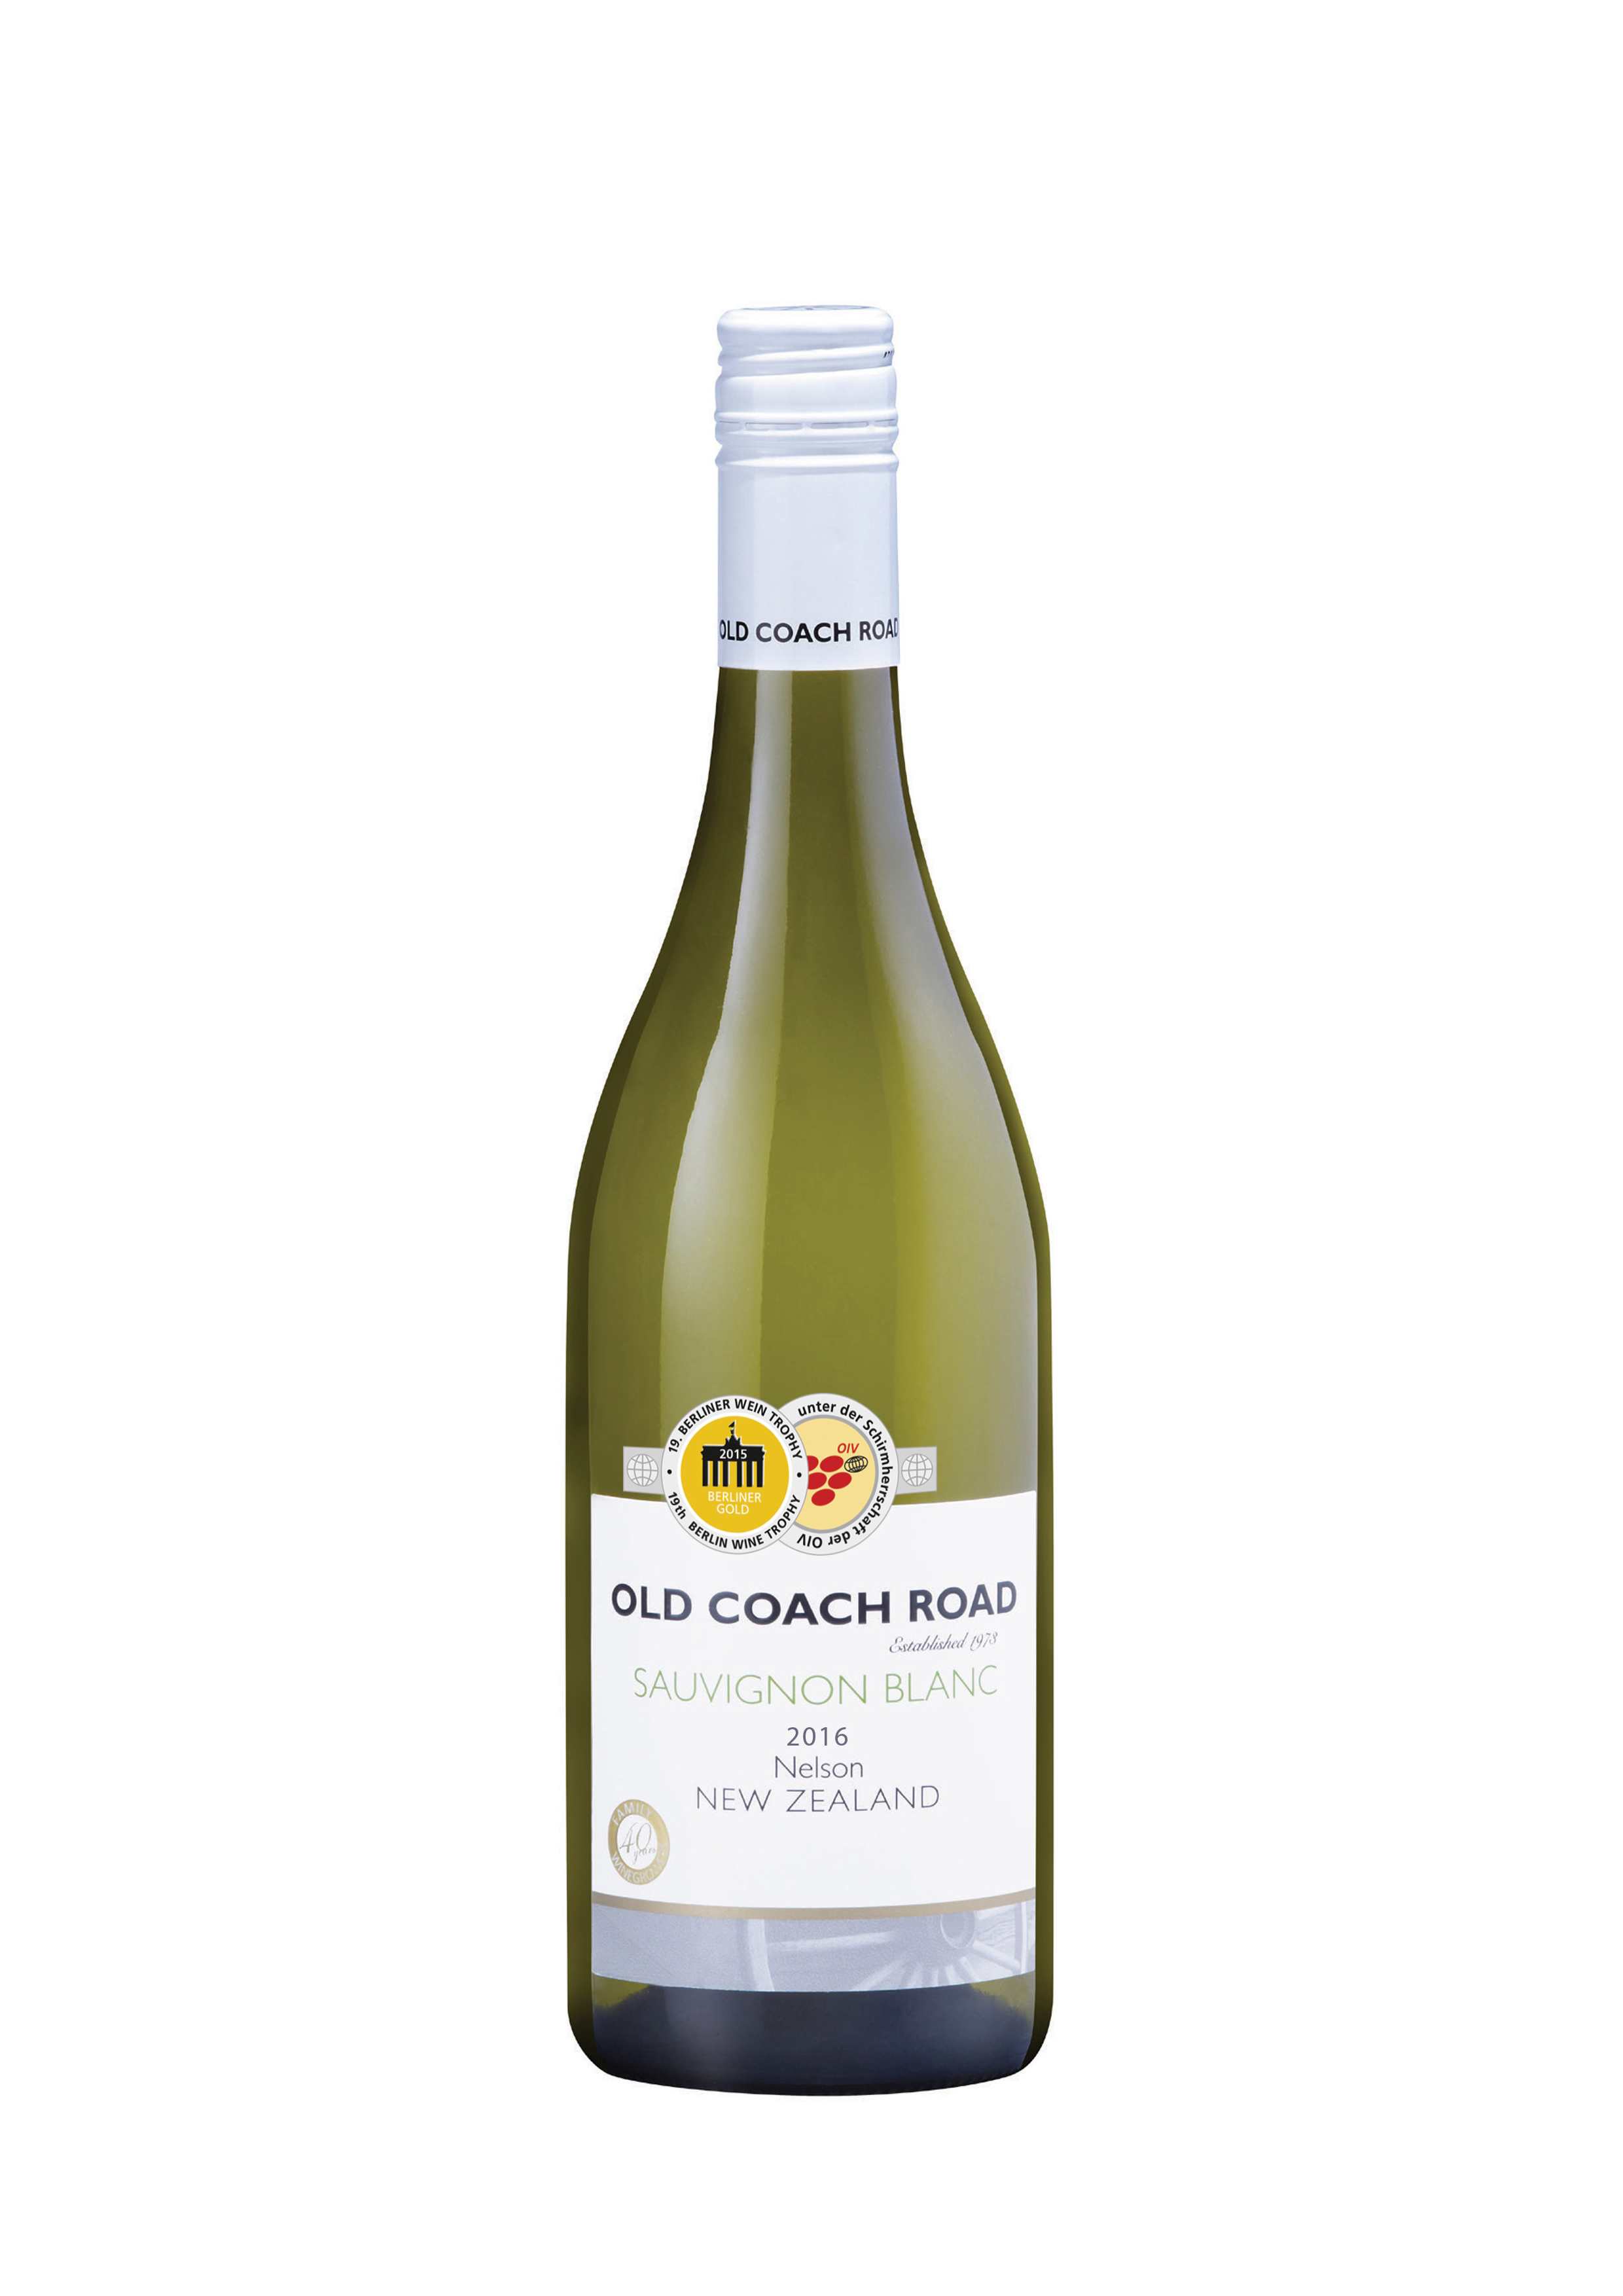 Old Couch Road Nelson Sauvignon Blanc